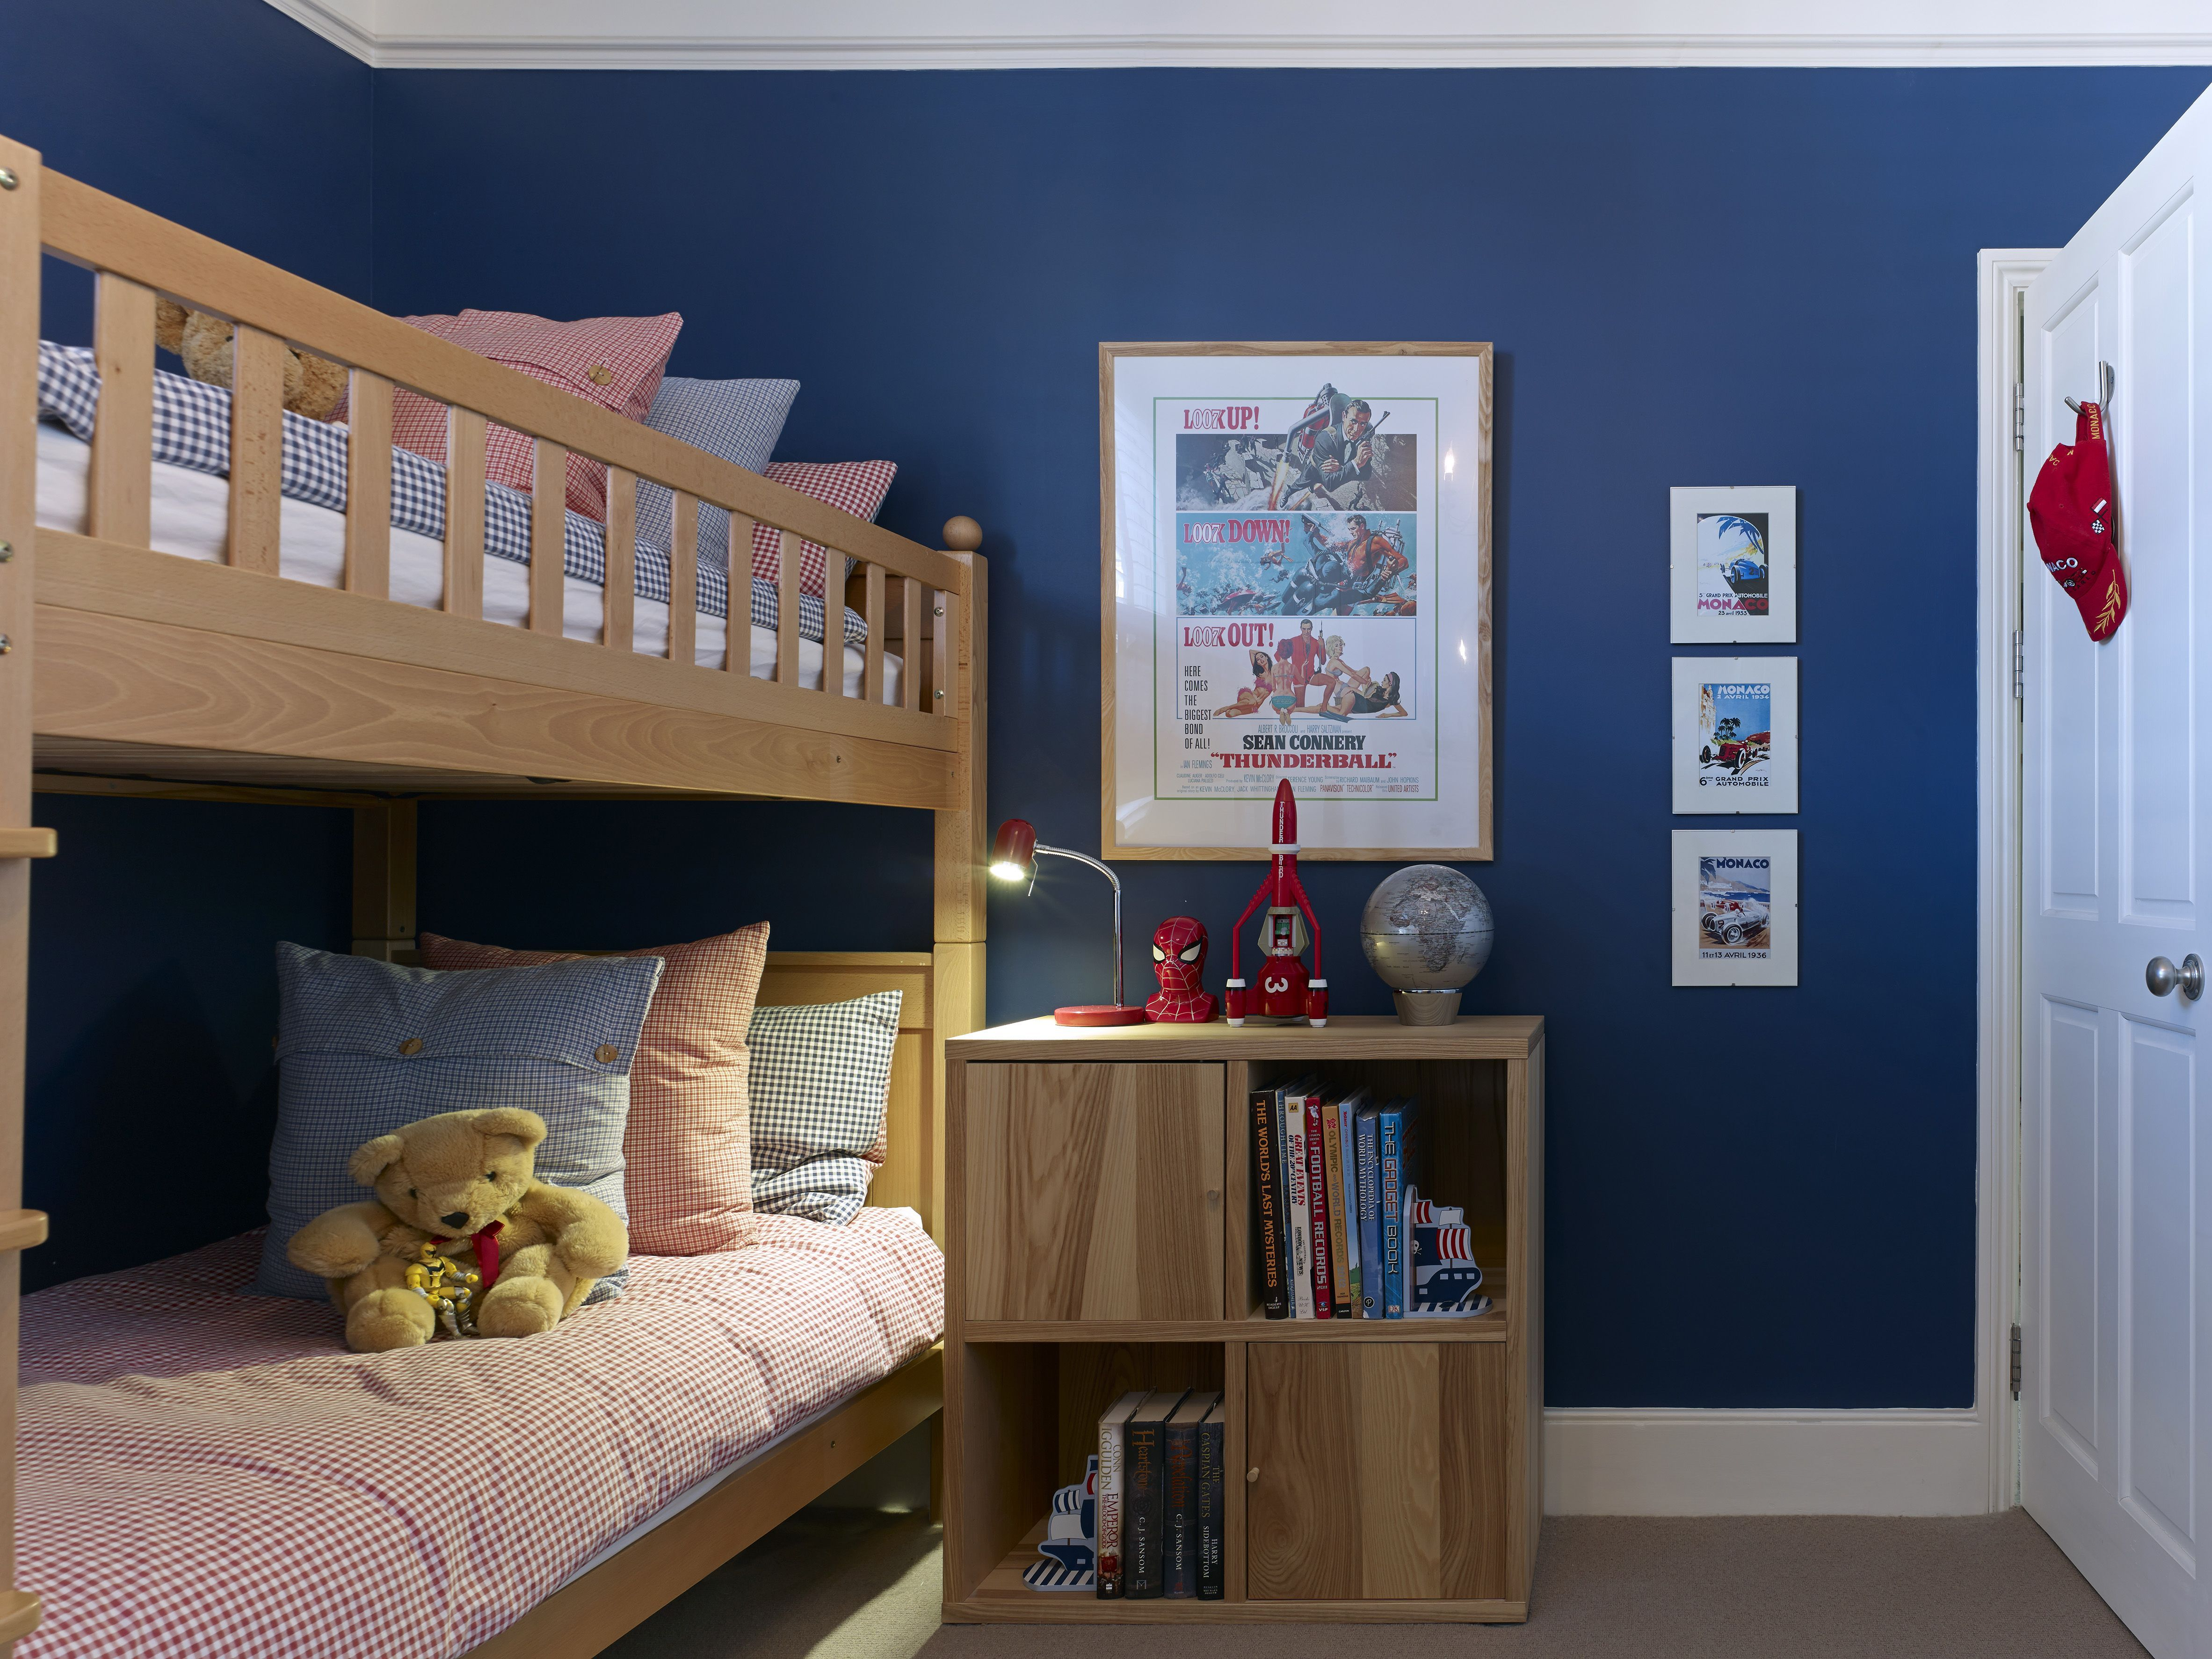 Bedroom Design For 7 Year Old Boy 6 Year Old Boy Bedroom Bedroom Design Old Room